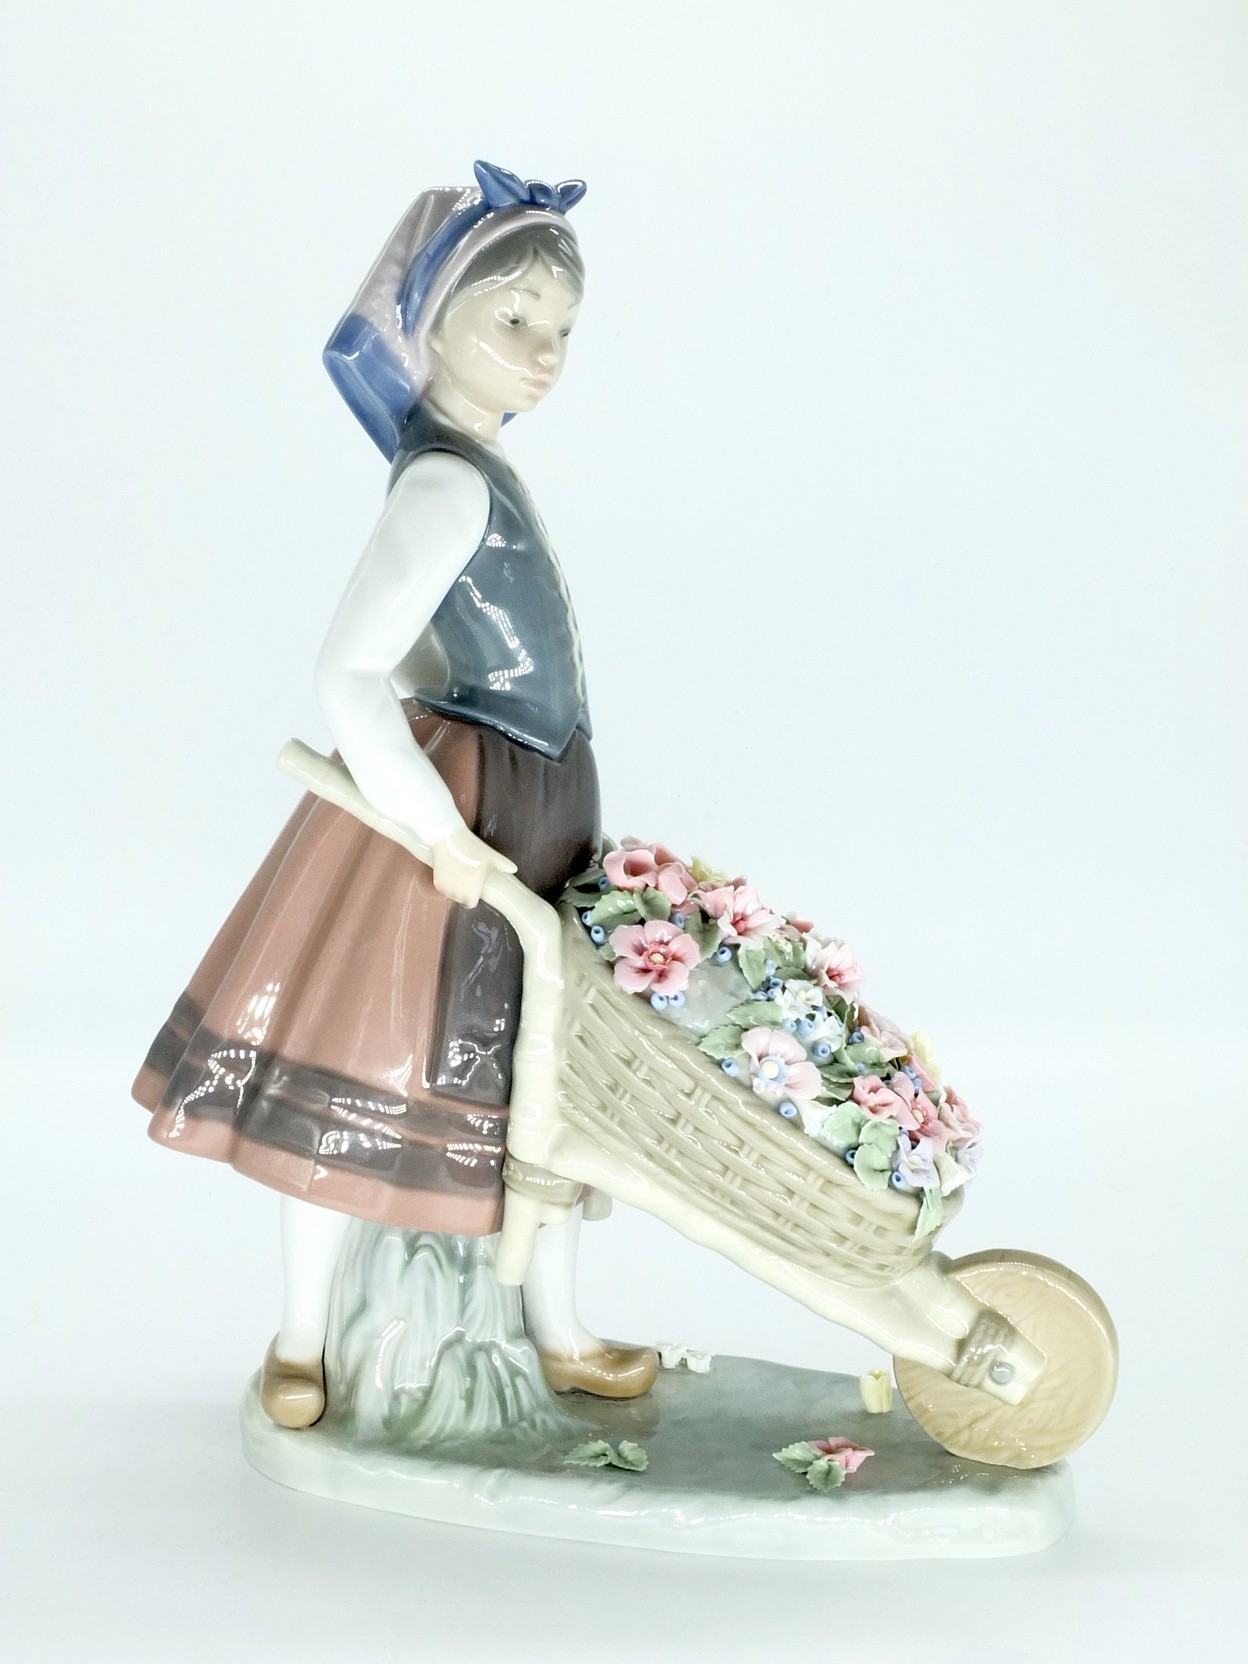 'Lladro Figure of a Girl With a Wheelbarrow'